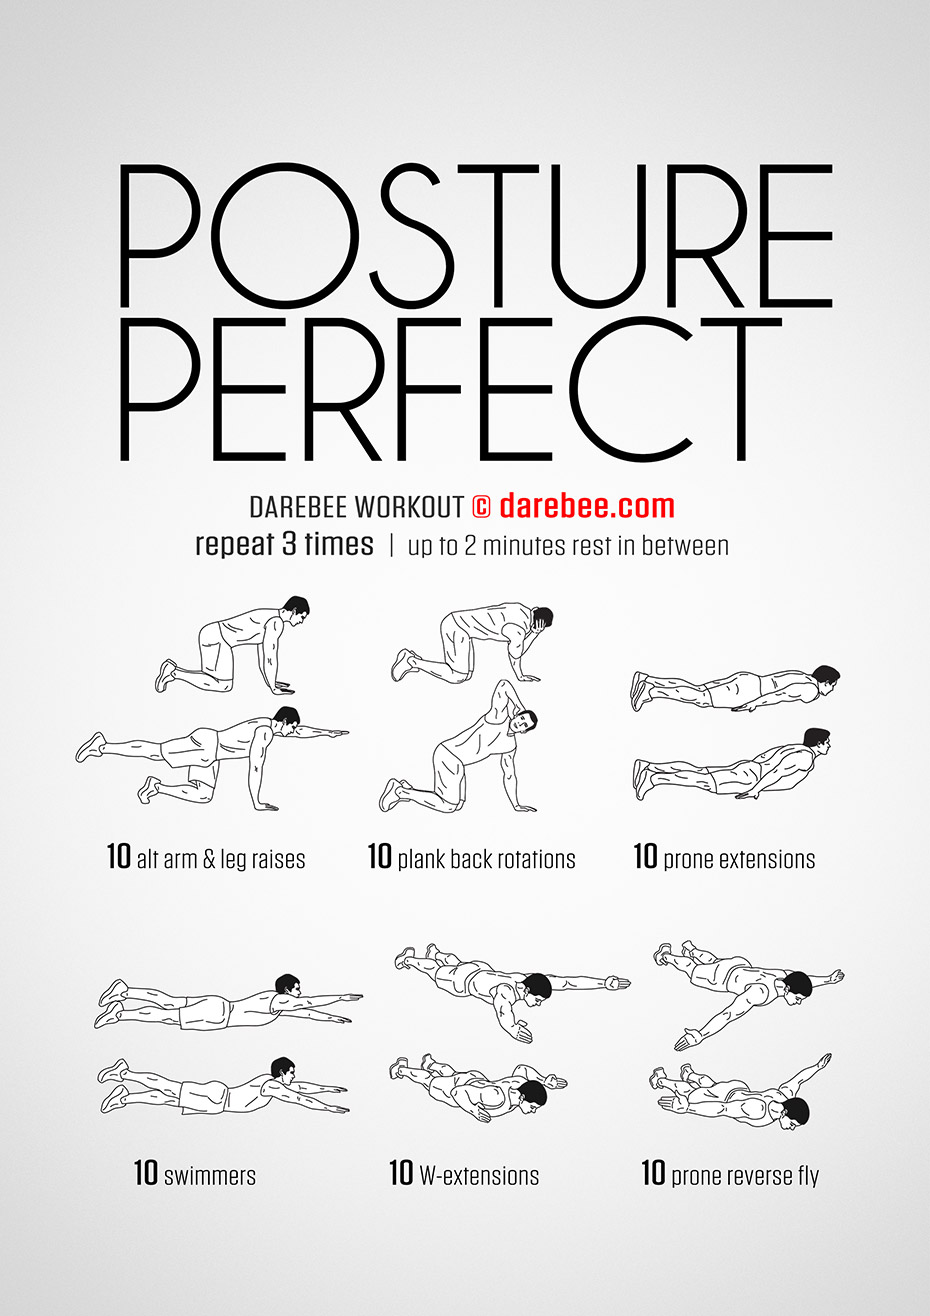 Posture Perfect Workout